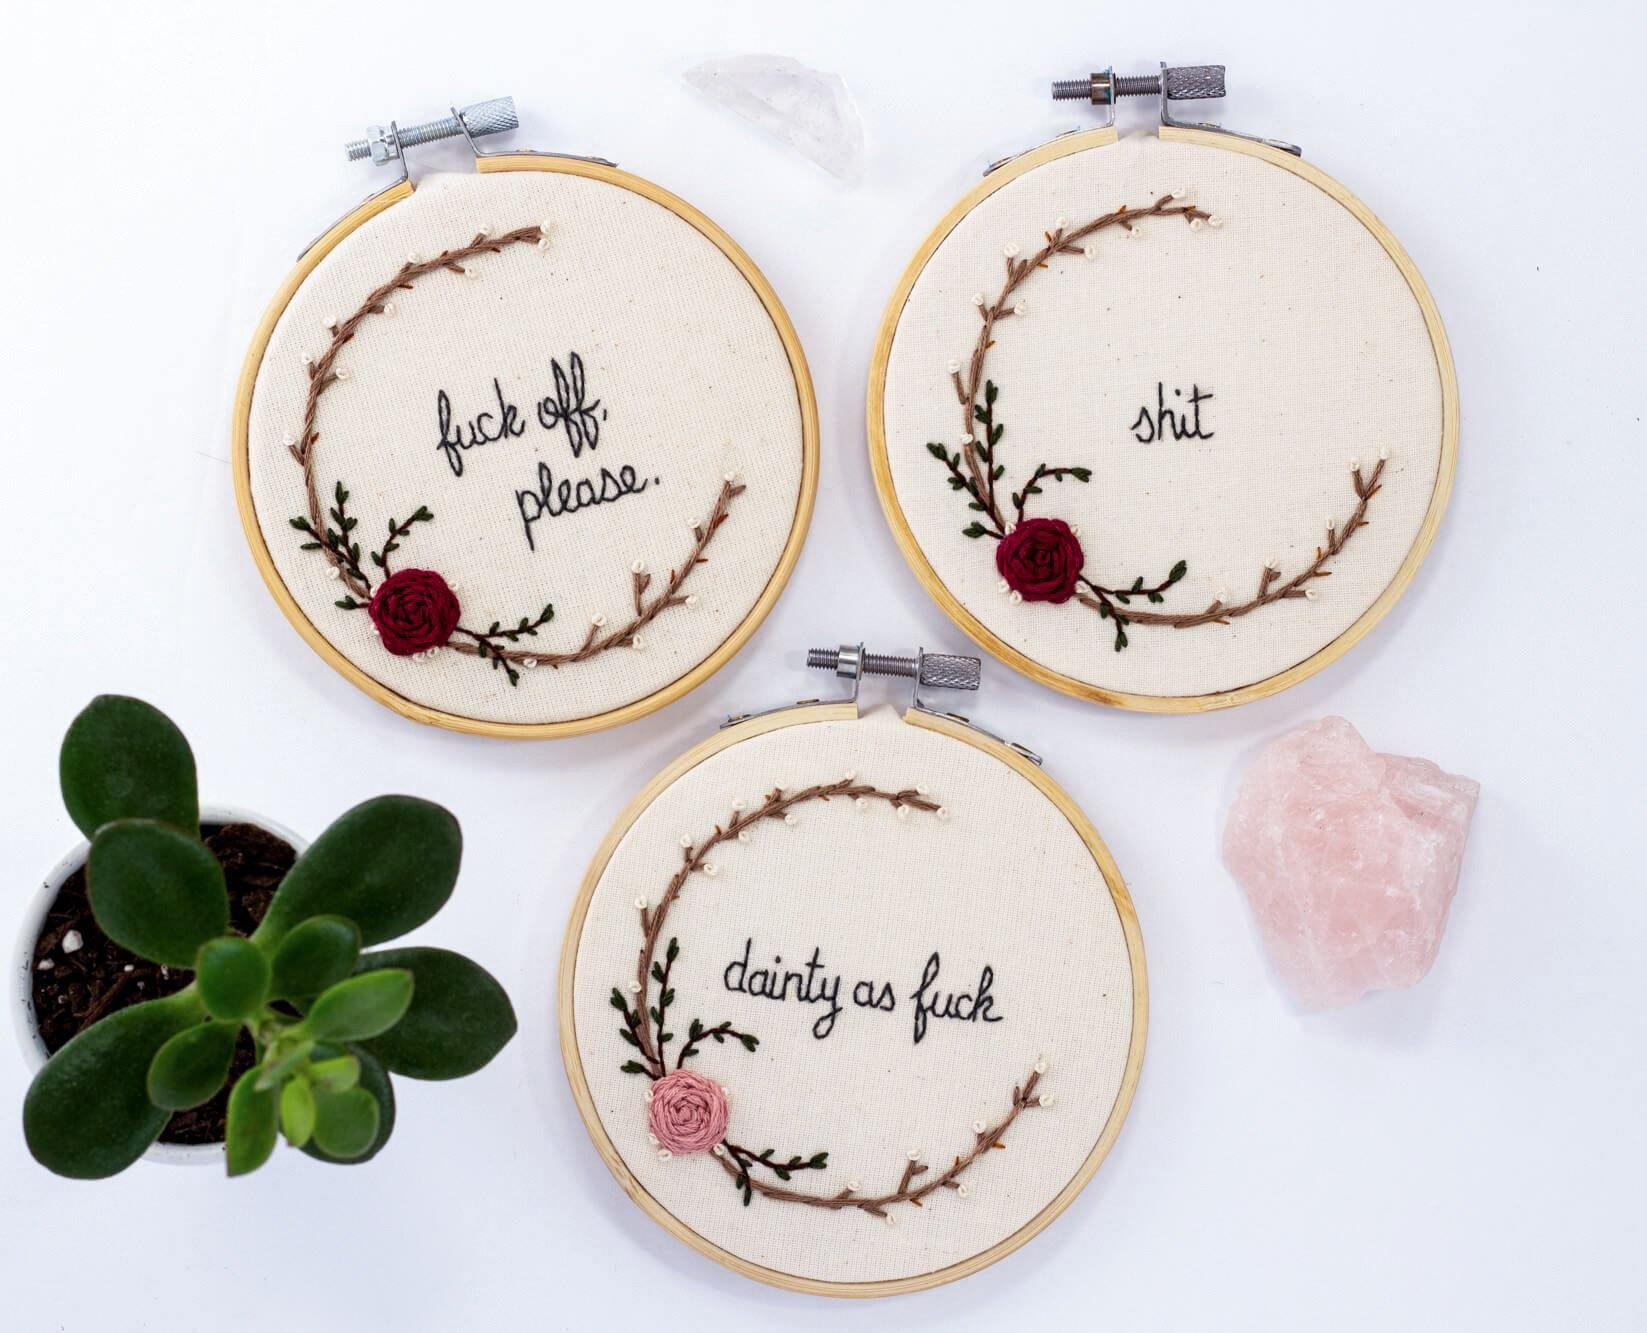 Swear Word, Mini Embroidery Hoop - The Femme Bohemian - The Femme Bohemian